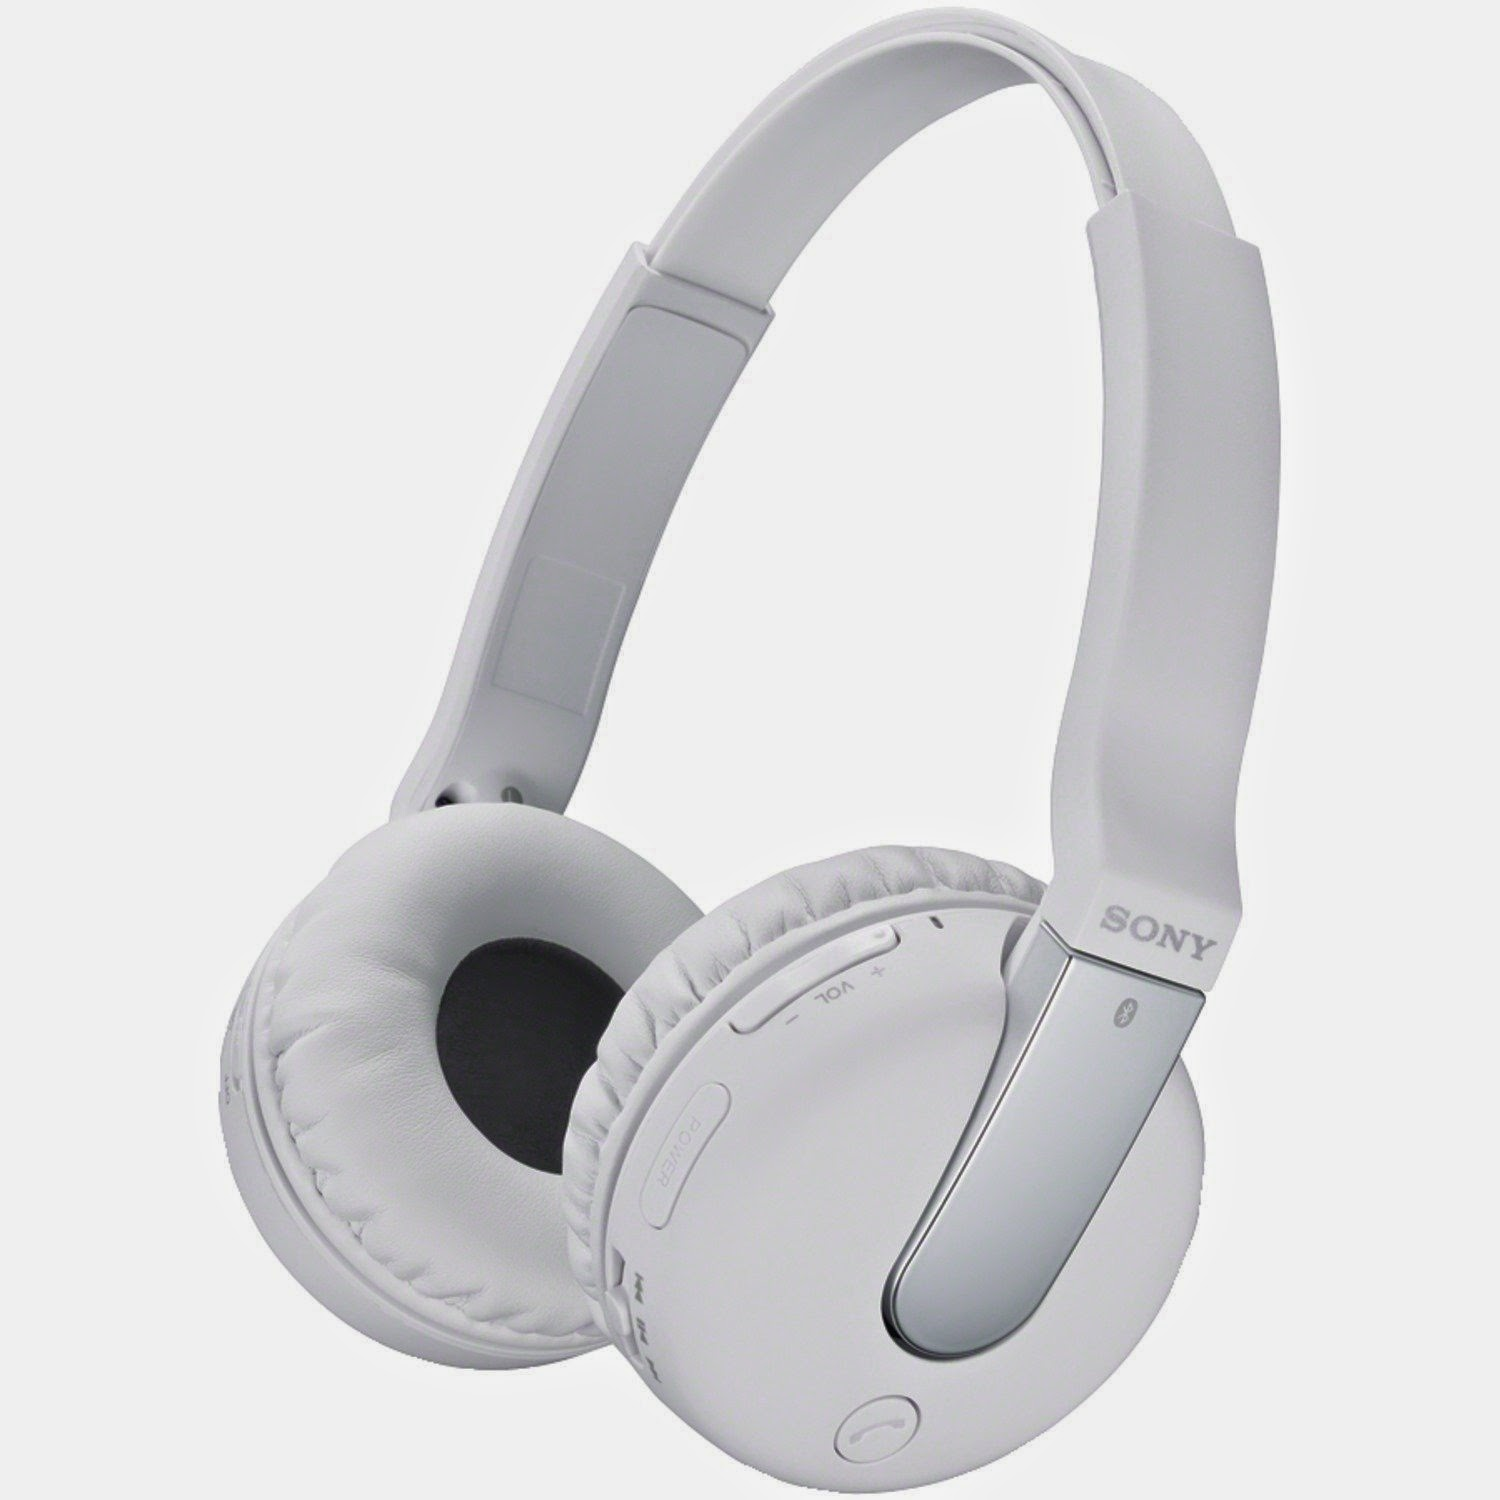 Sony DRB-TN200 Headphones